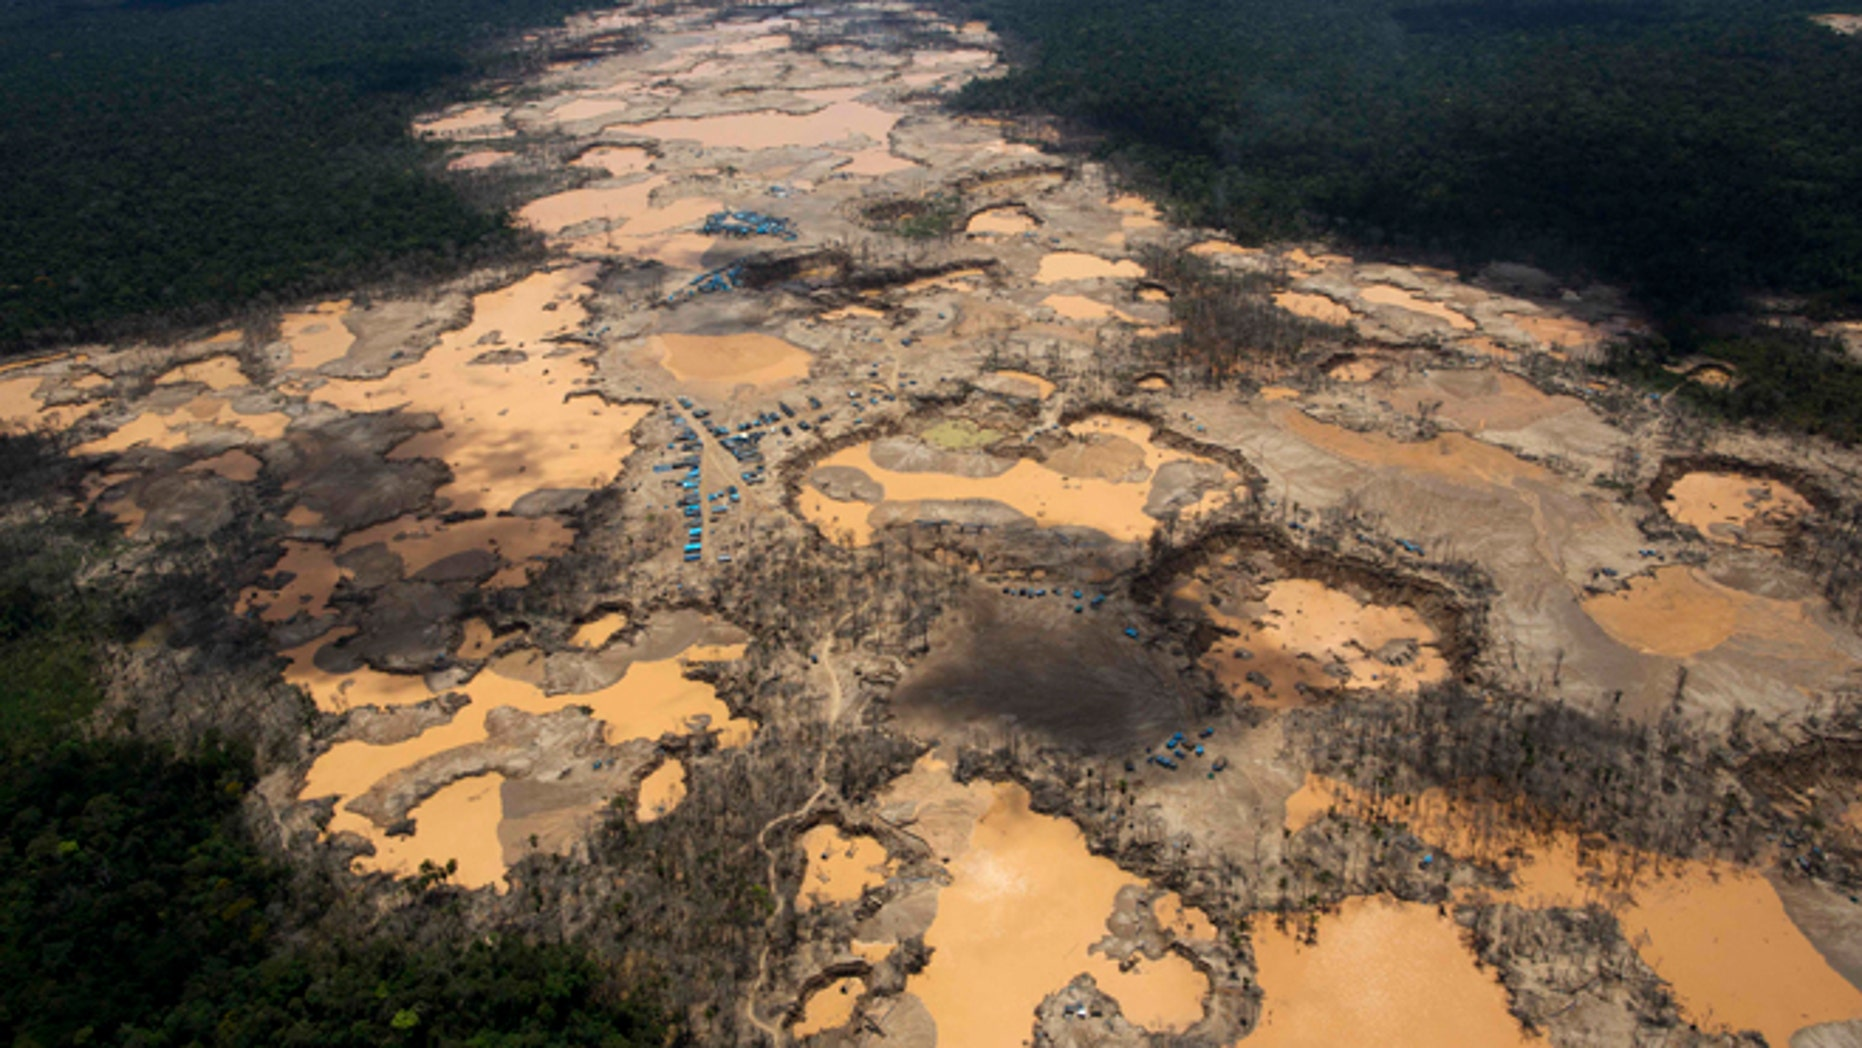 Craters filled with water, caused by illegal gold mining activities, in La Pampa, in Peru's Madre de Dios region.